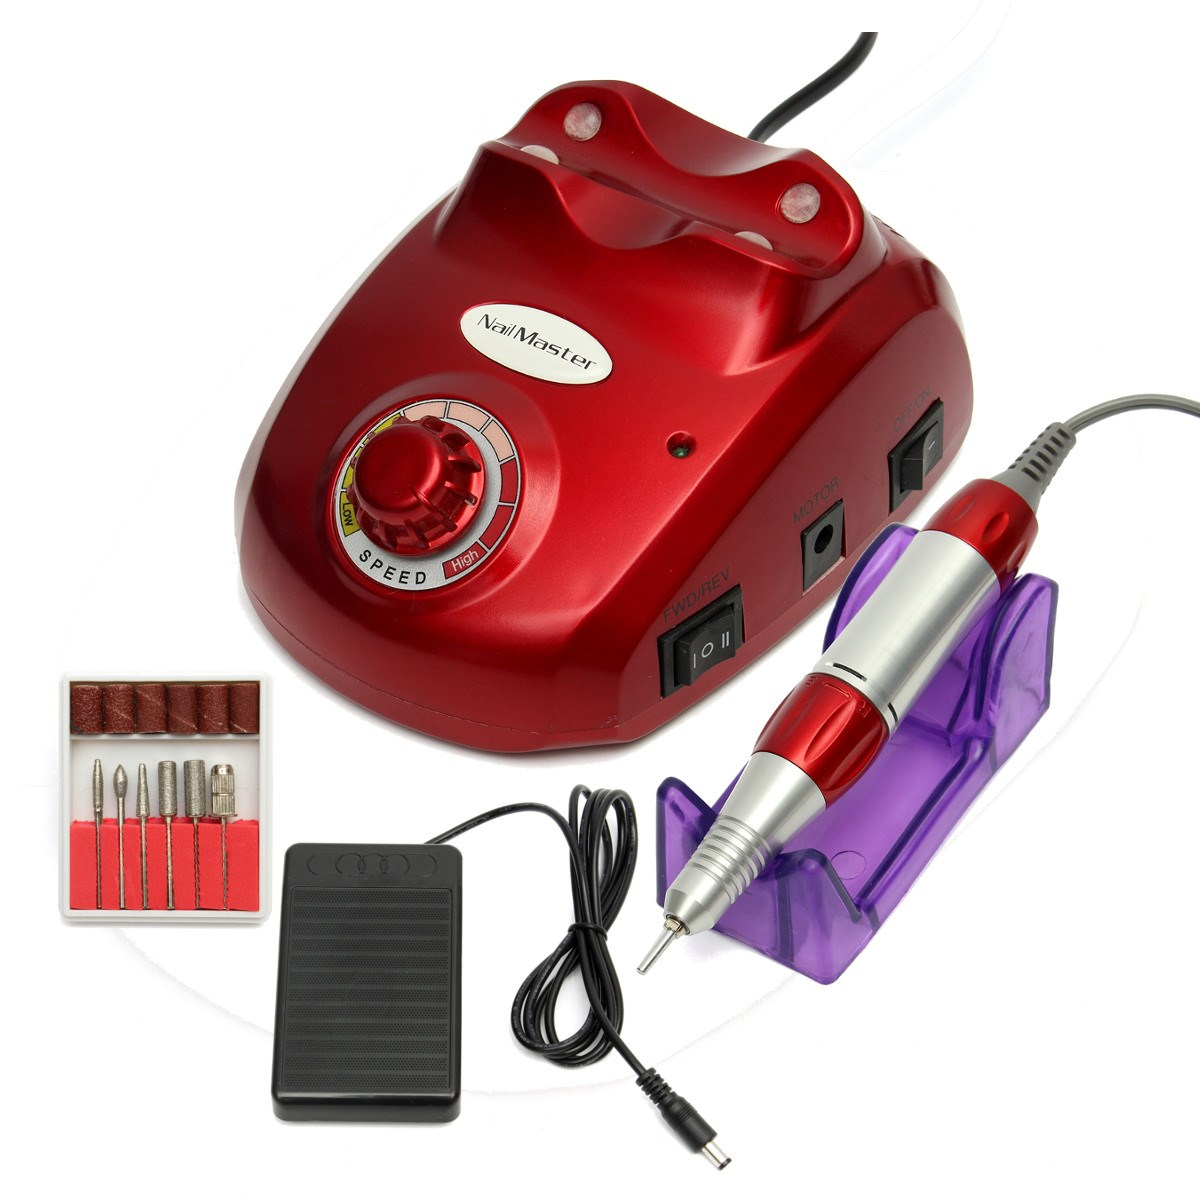 1 Set Professional Nail Tools 30000 RPM Electric Nail Drill Machine Maniure And Pedicure Drill Polish For Nail Art Gel Polish hot 30000 rpm nail drill pro electric nail drill file machine maniure and pedicure drill polish for nail gel polish nail tools